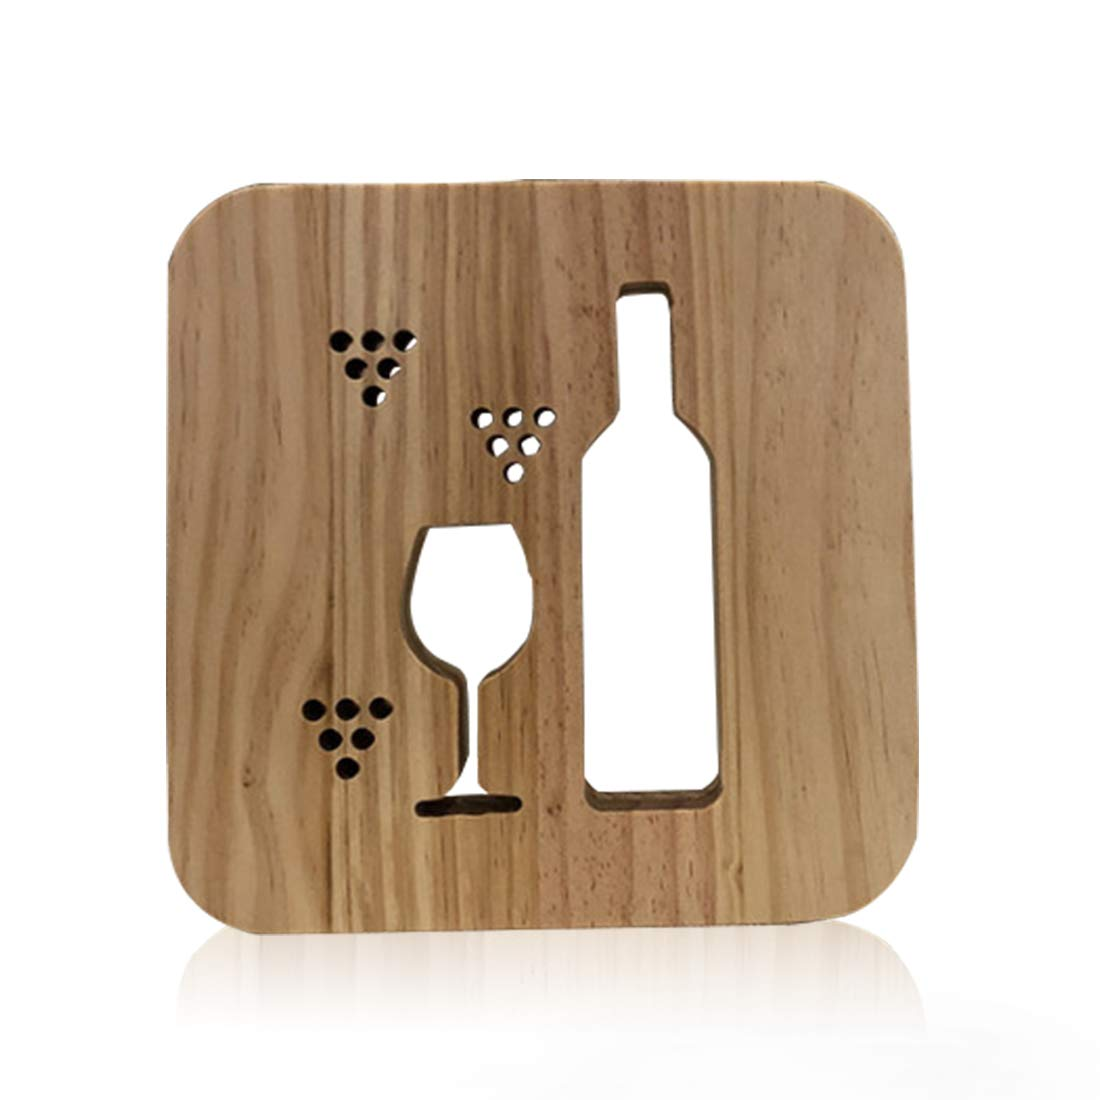 Wooden Wine Led Lamp for Children, LeKong 3D Wooden Carving Patterns, USB Plug in, Gift for Birthday & Friendship, Fit for Halloween & Christmas Decoration, 2018 New